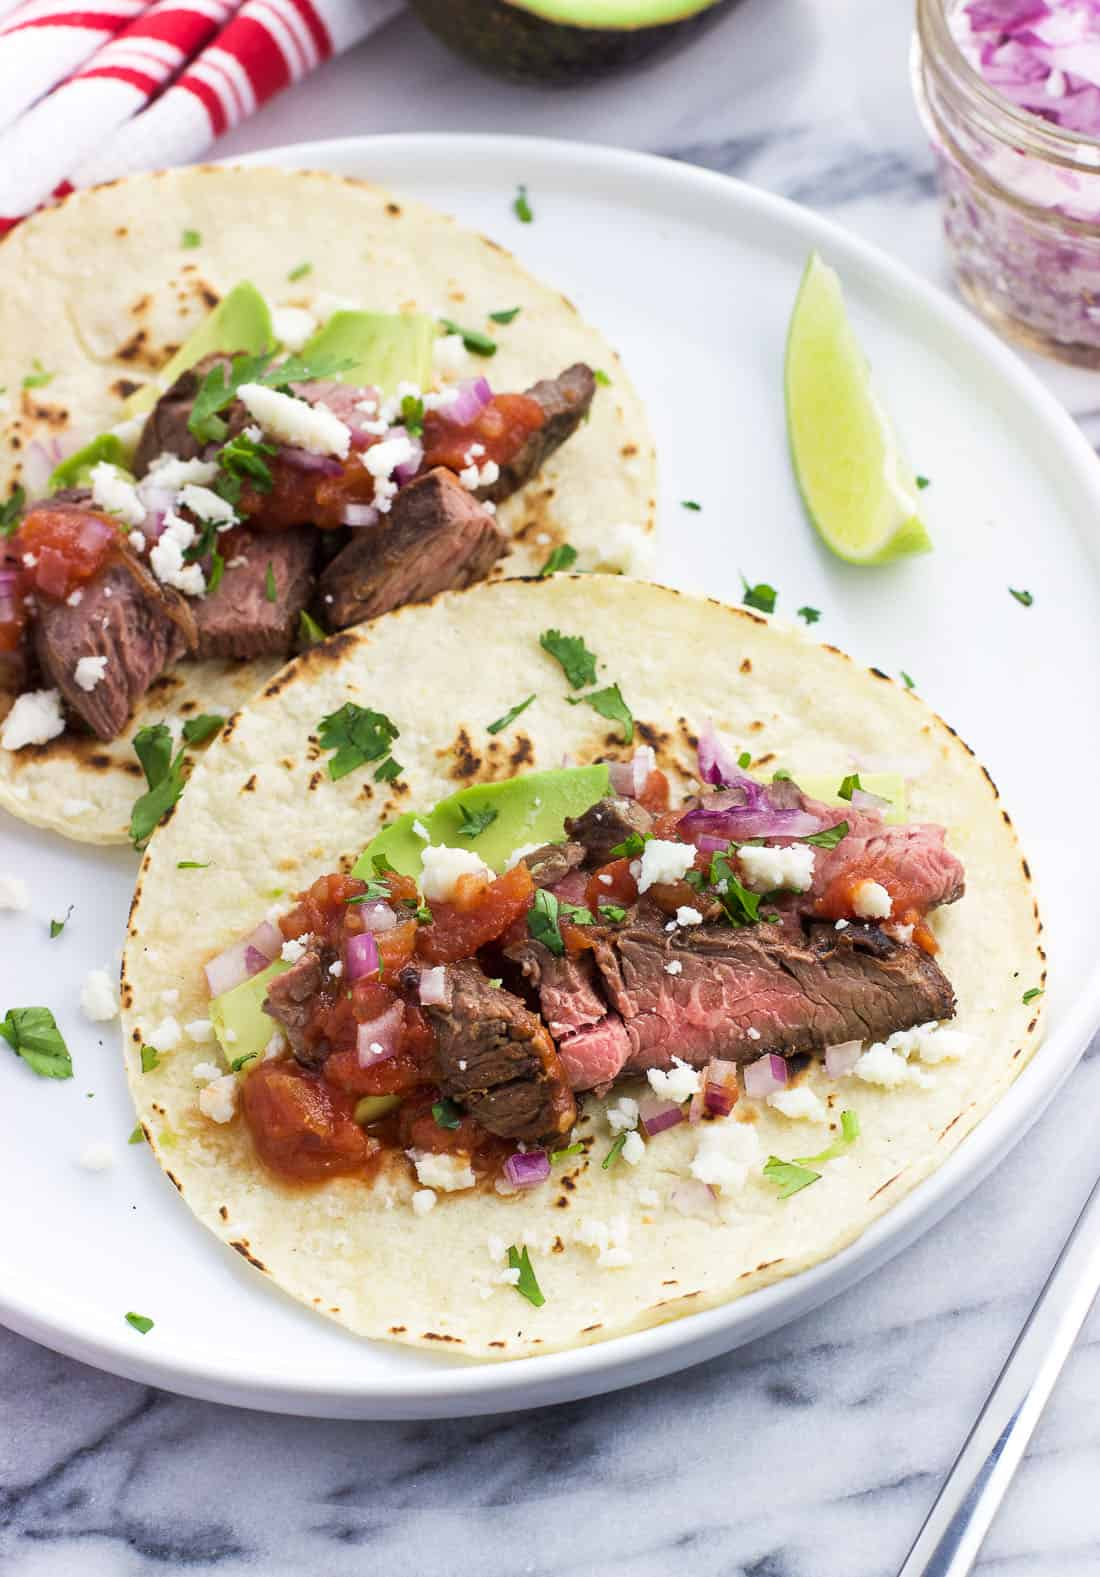 Grilled carne asada tacos on a white with a lime wedge and topped with chopped cilantro, crumbled cotija cheese, chopped red onion, avocado, and salsa.